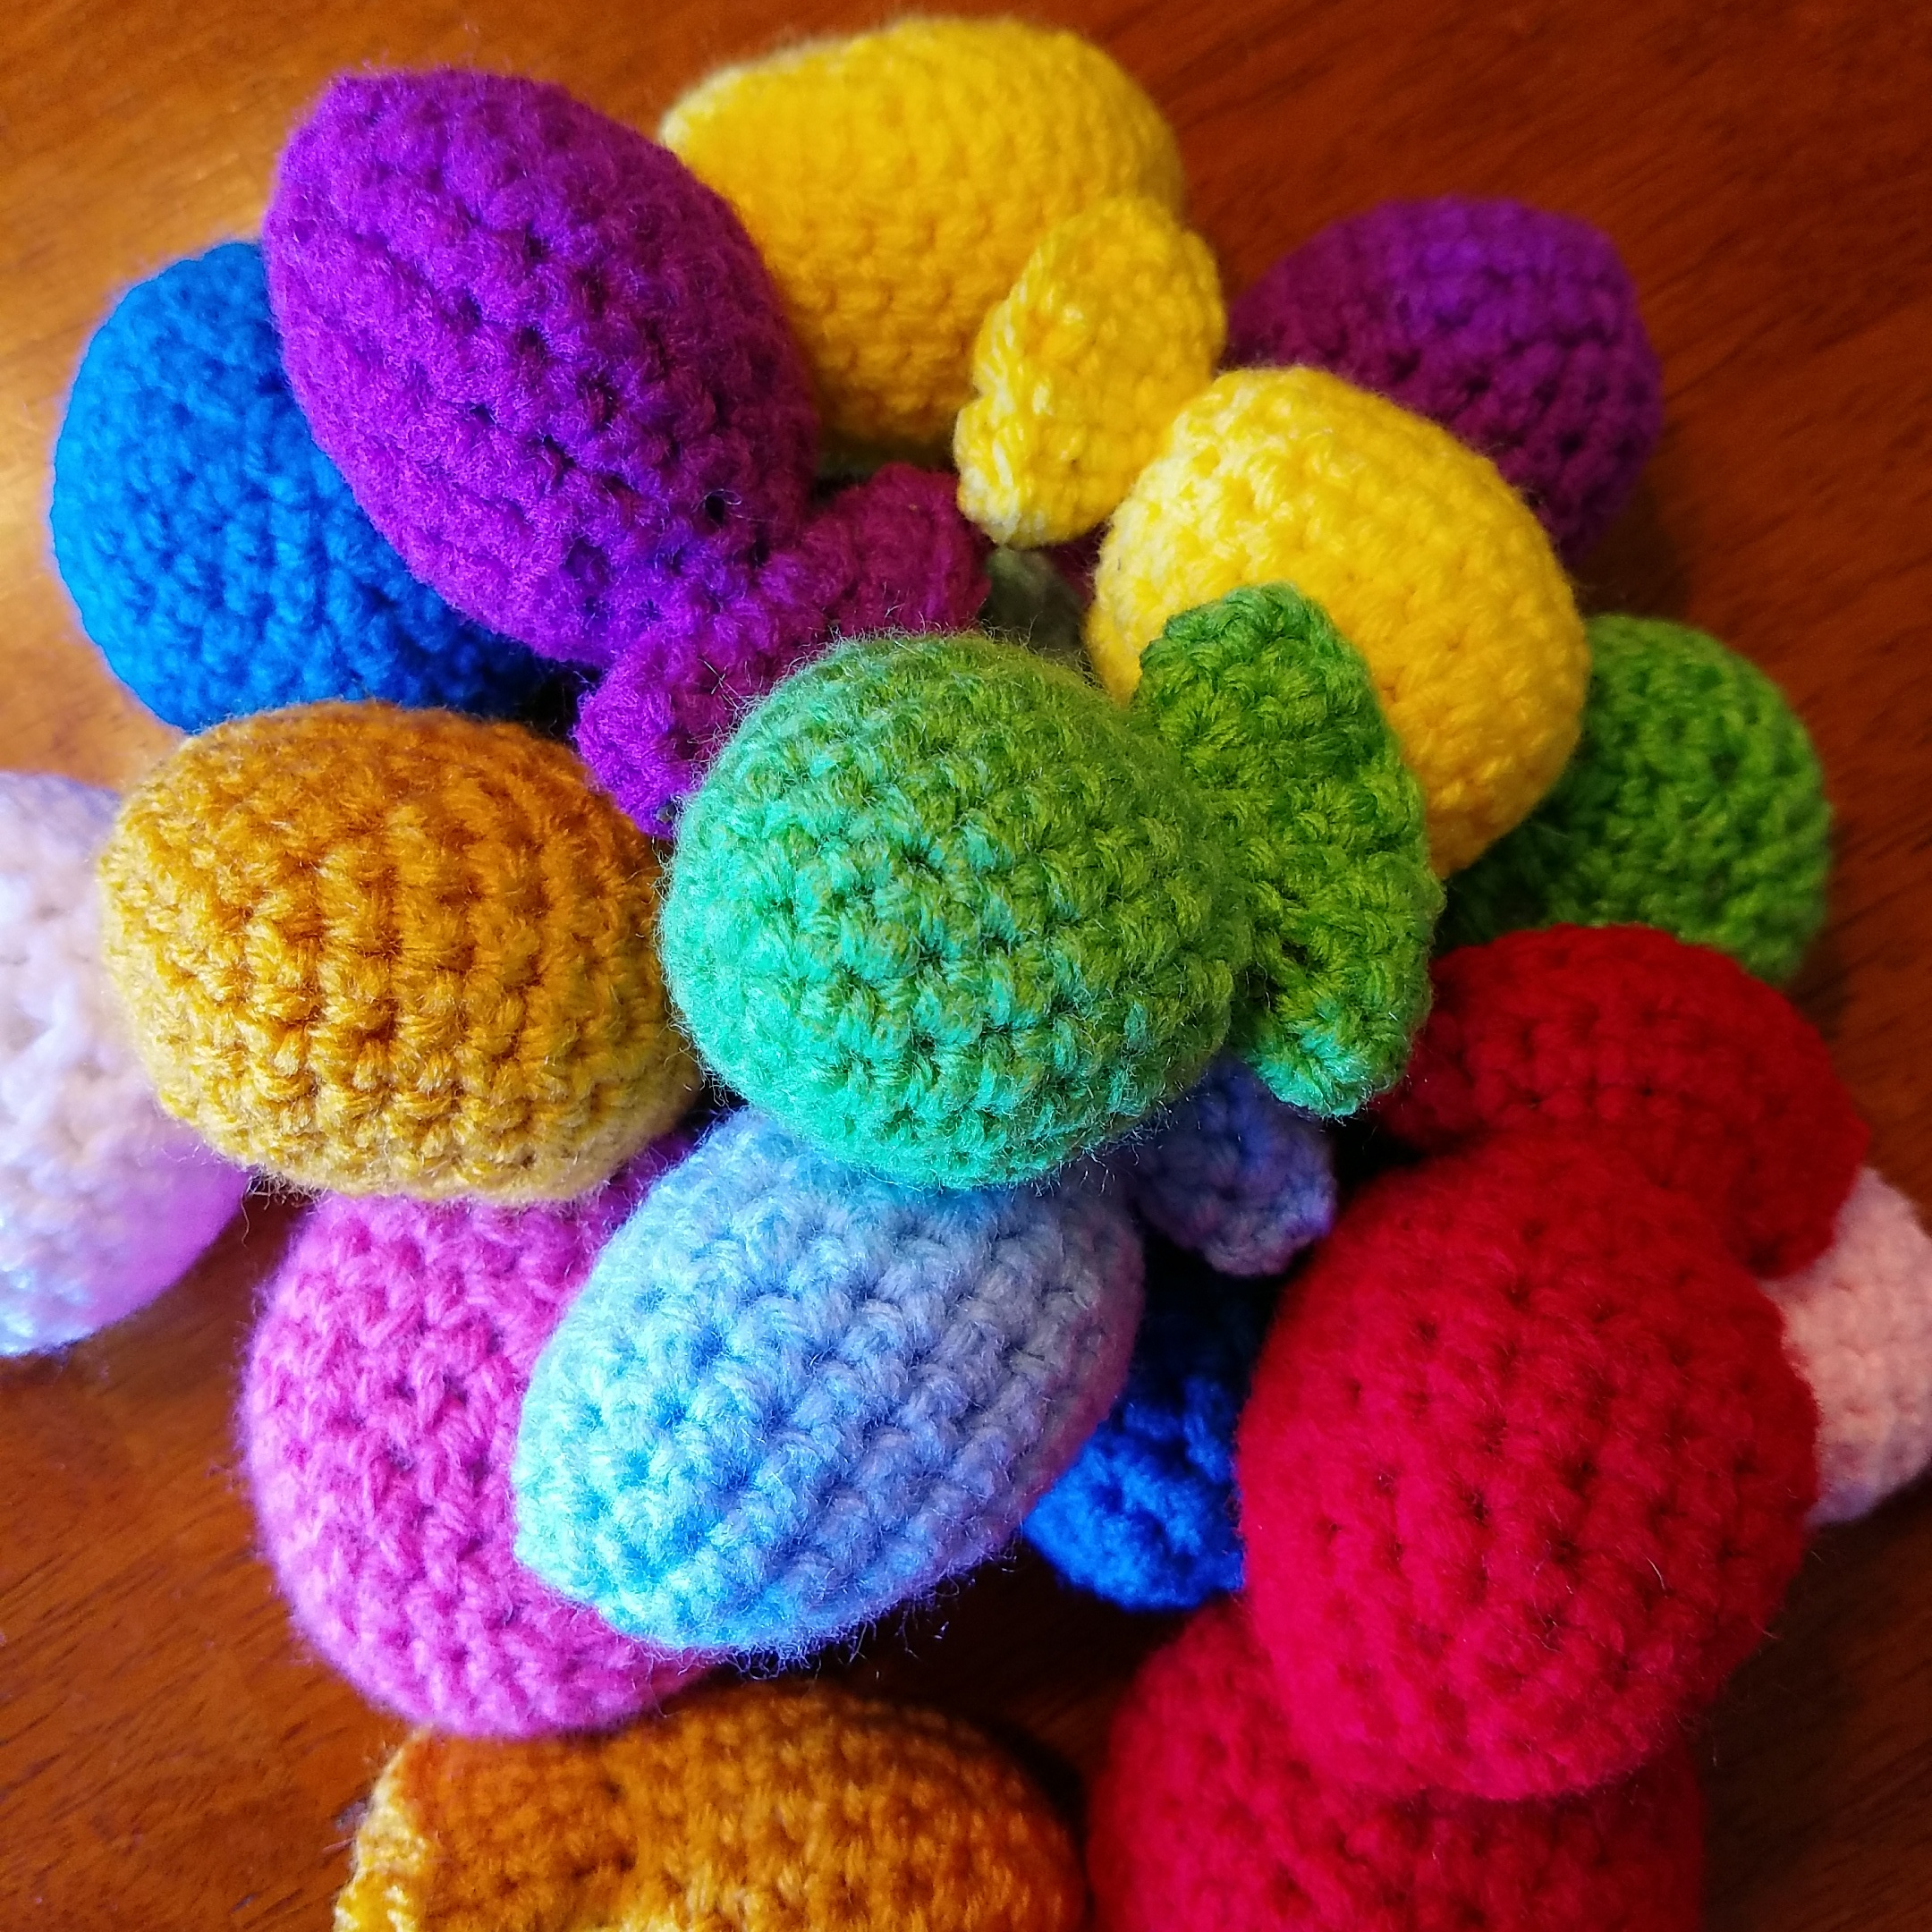 Crochet Catnip Toys To Craft A Home